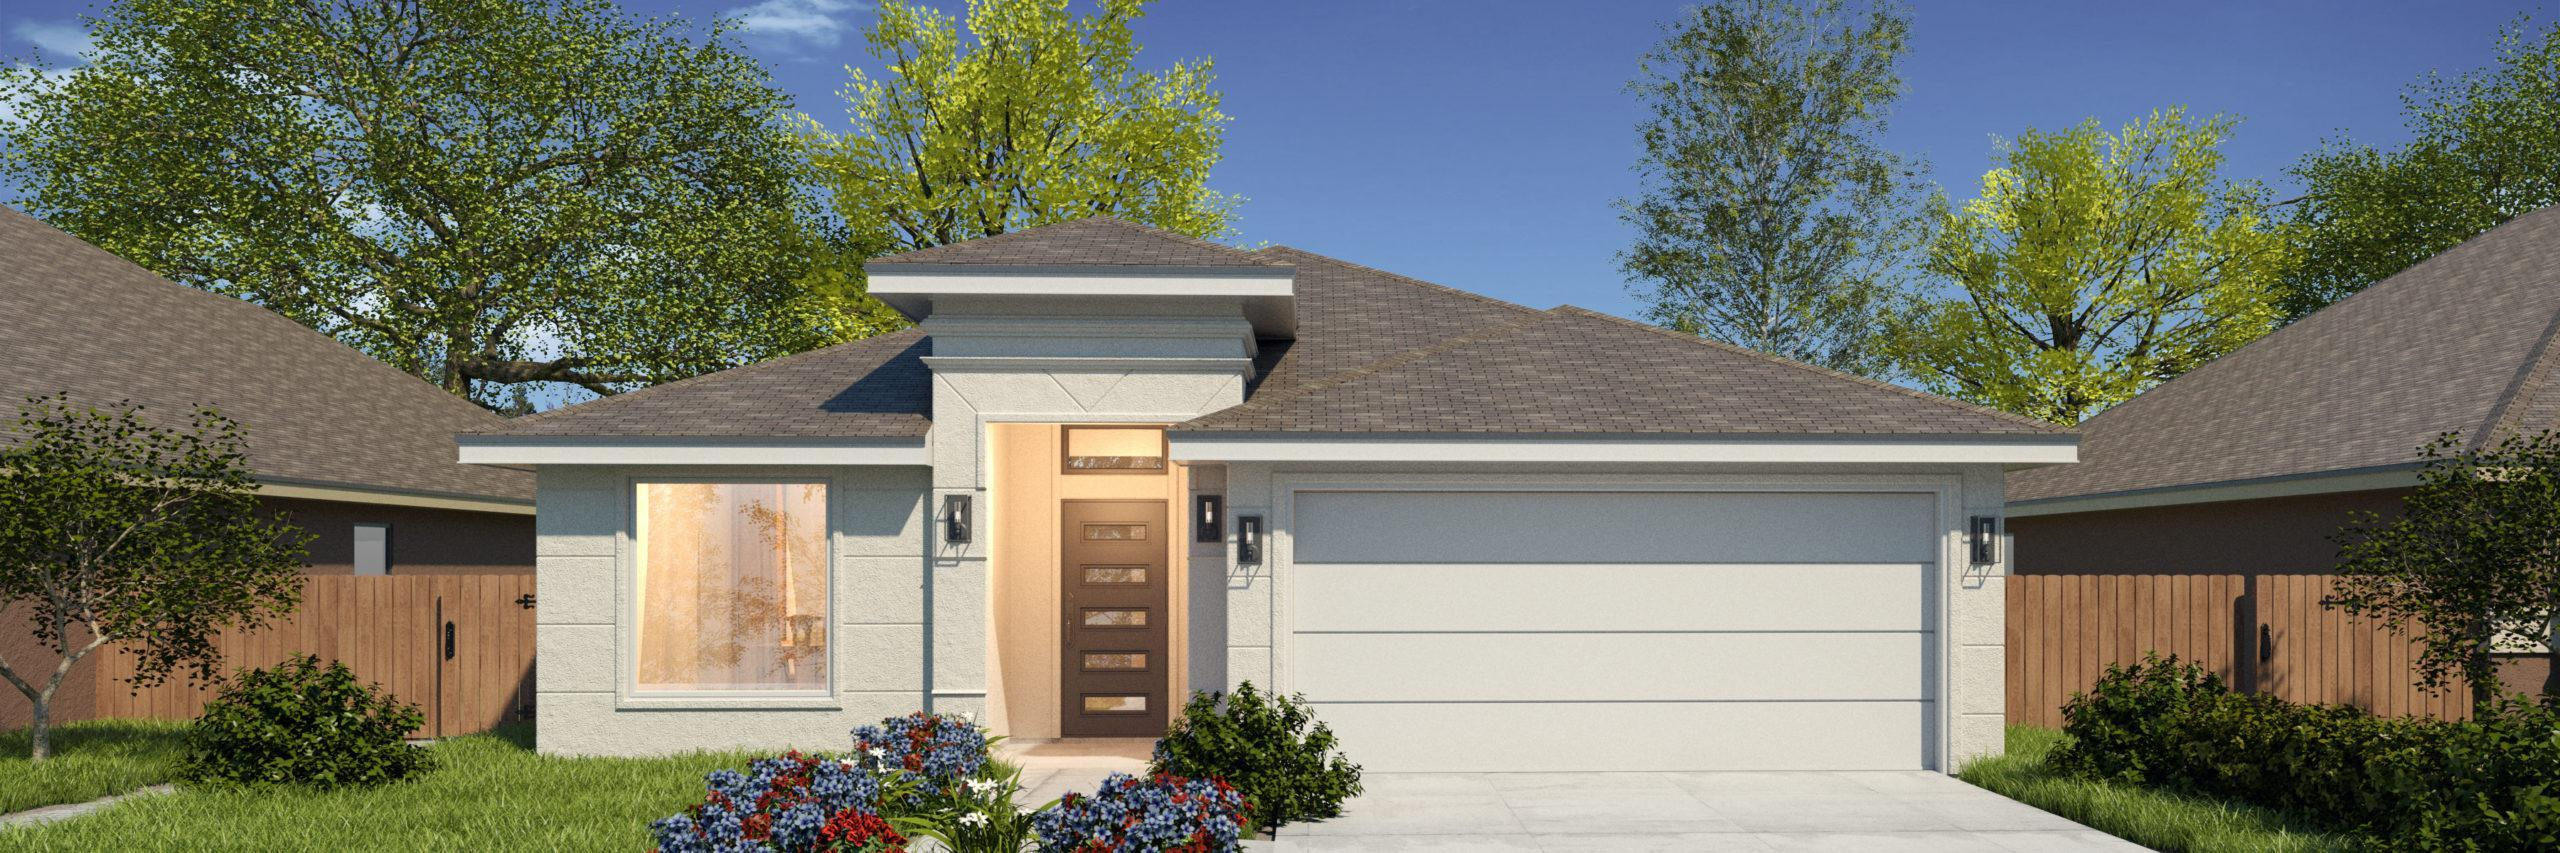 Exterior featured in the San Pedro II By WestWind Homes in Rio Grande Valley, TX